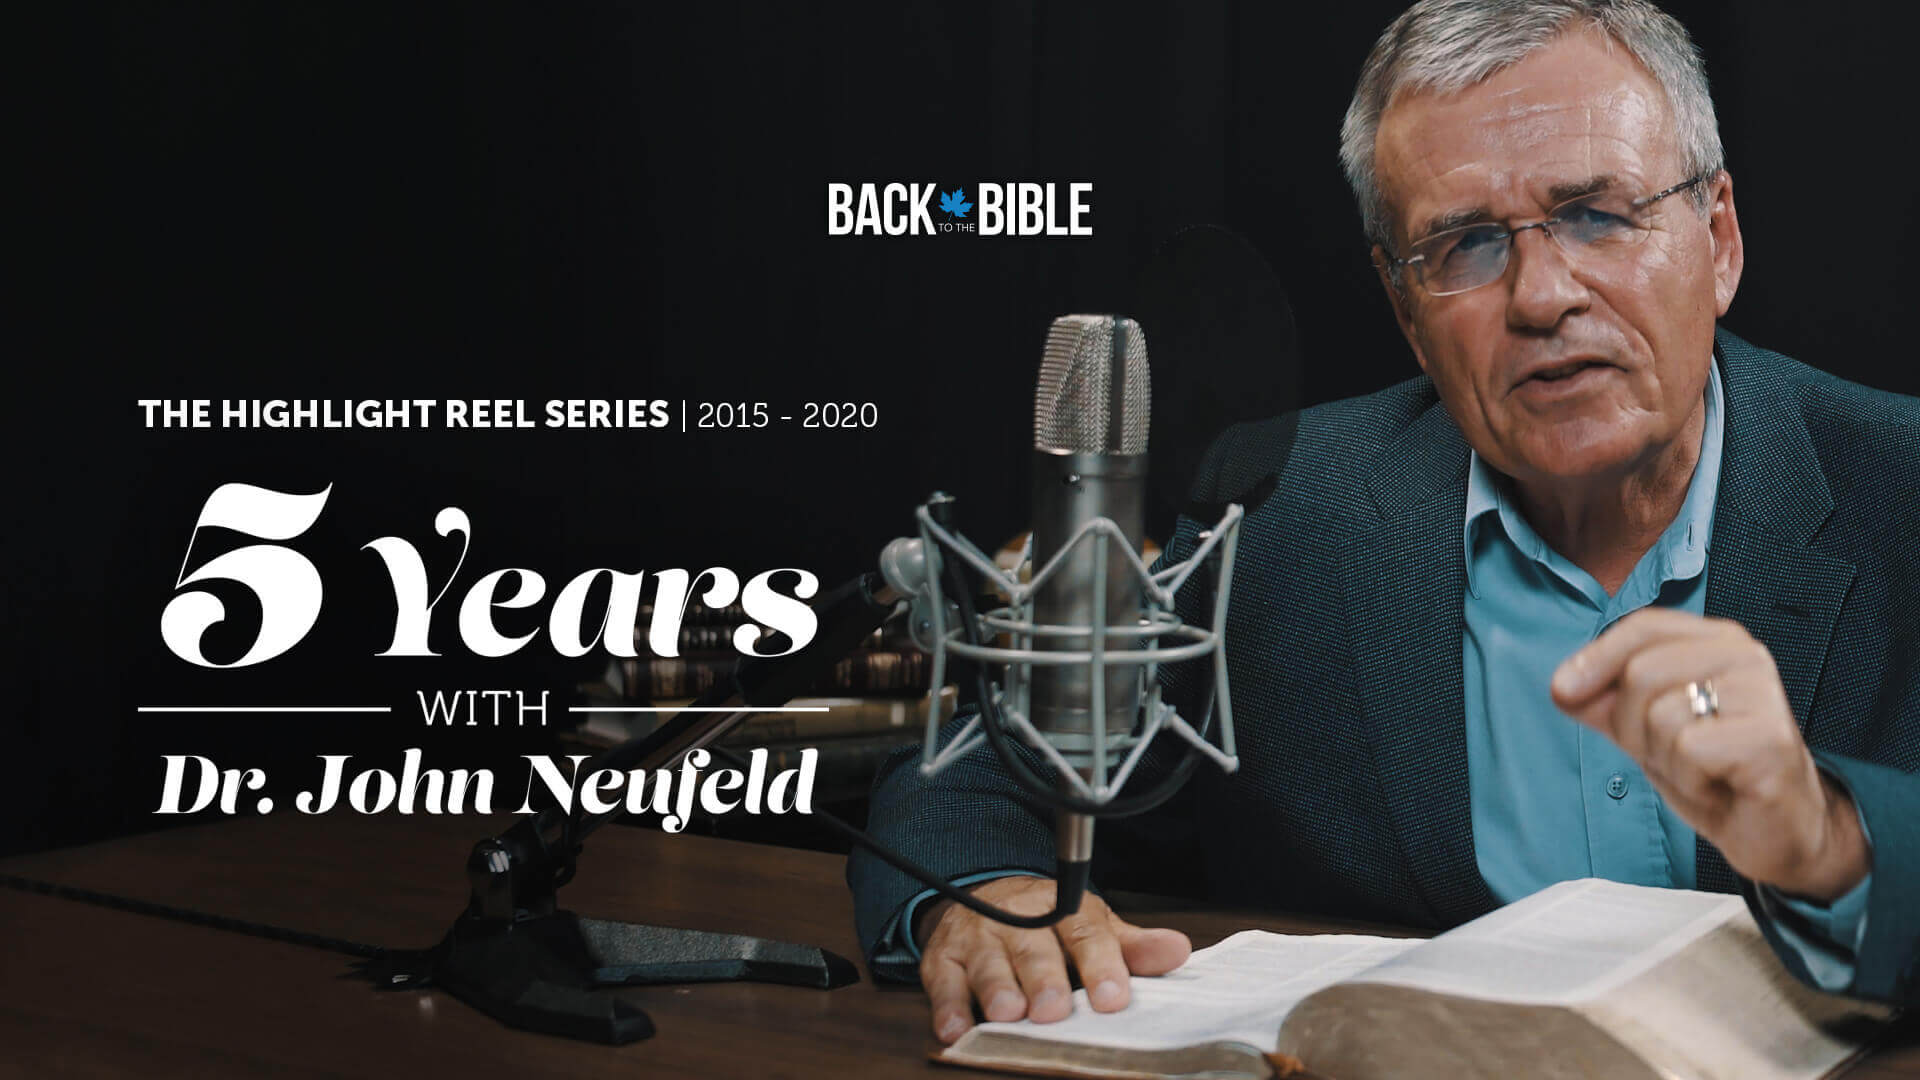 The Highlight Reel Series: 5 Years of Dr. John Neufeld